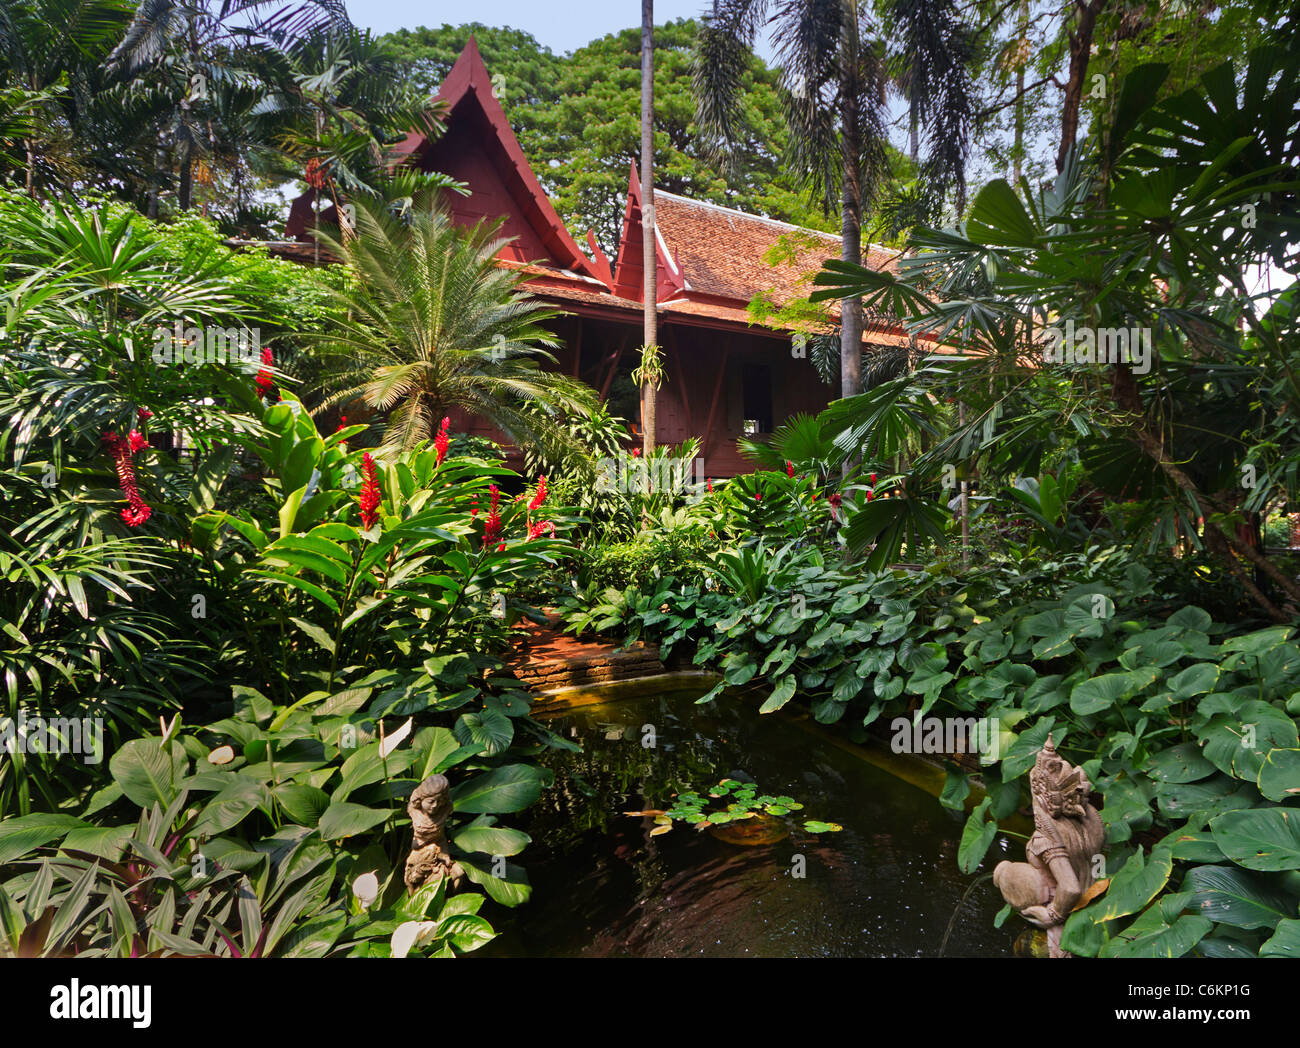 The Jim Jim Tompson House, Tropical Garden, Bangkok, Thailand - Stock Image